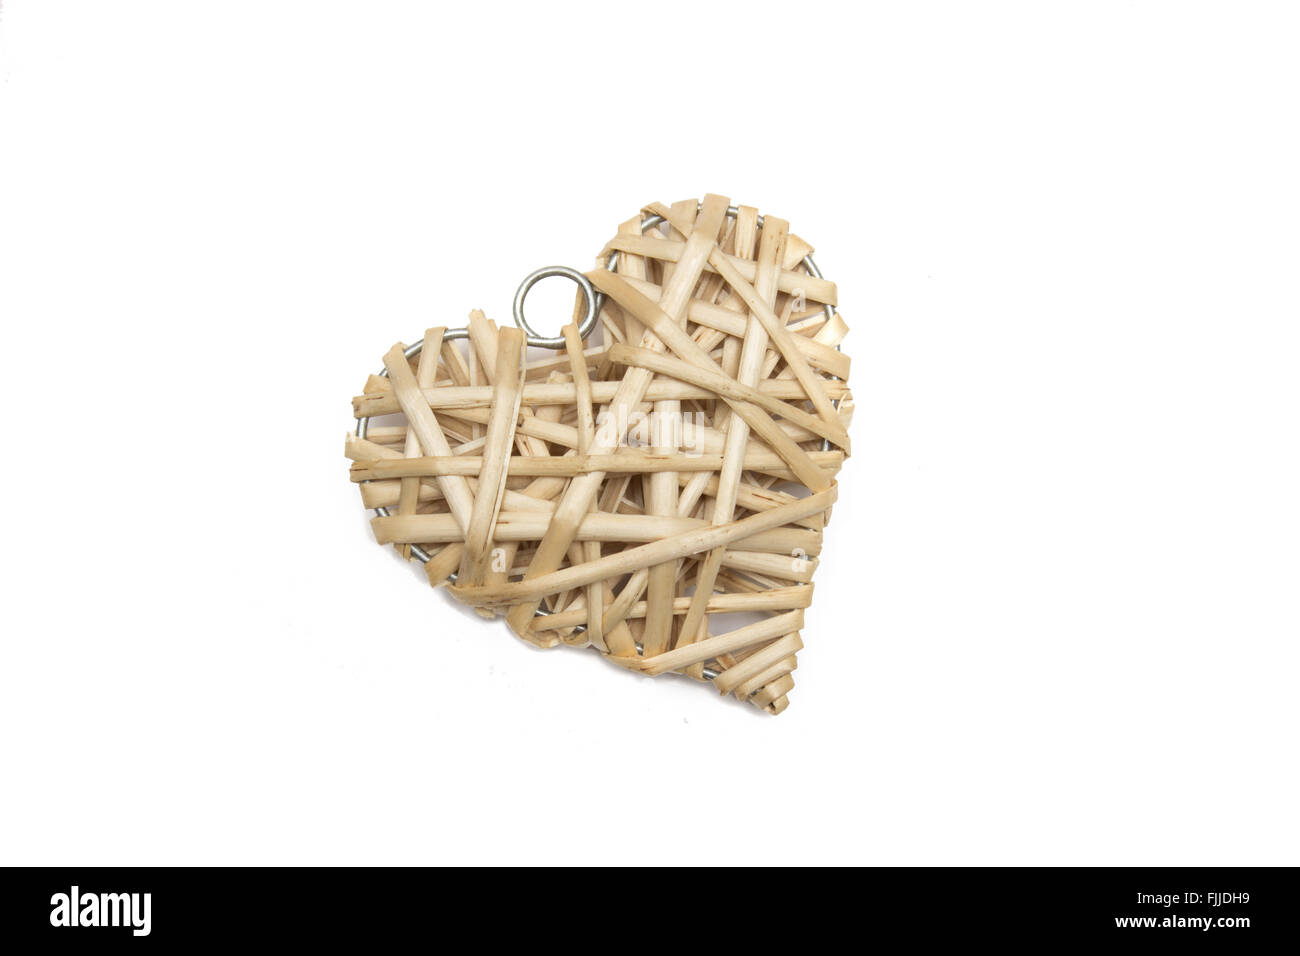 Straw heart on a white background - Stock Image